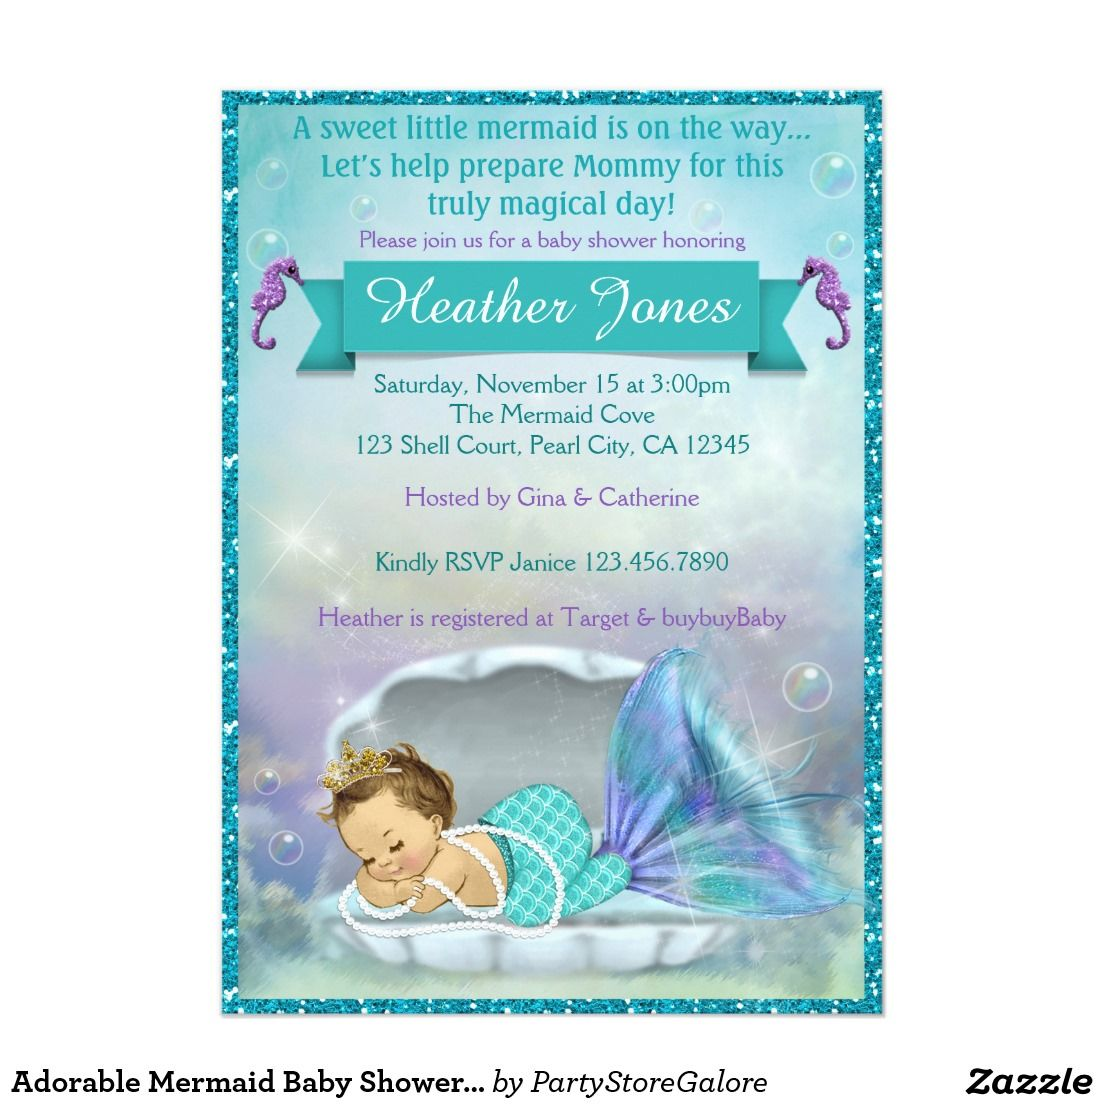 Adorable Mermaid Baby Shower Invitations #130 | Baby Shower ...